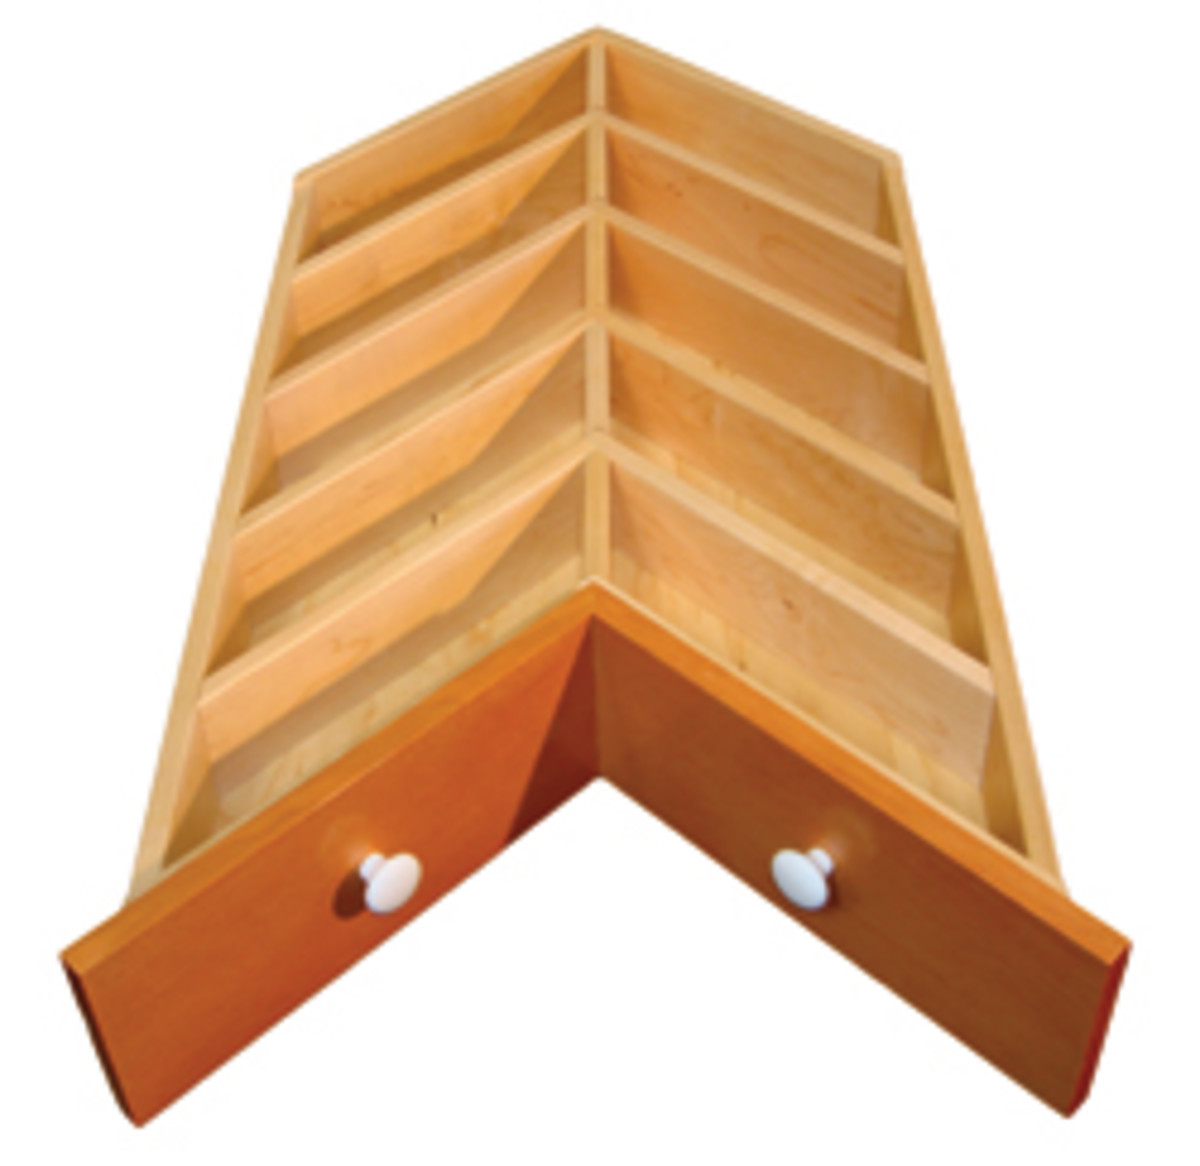 Chevron corner drawer dividers from Western Dovetail.